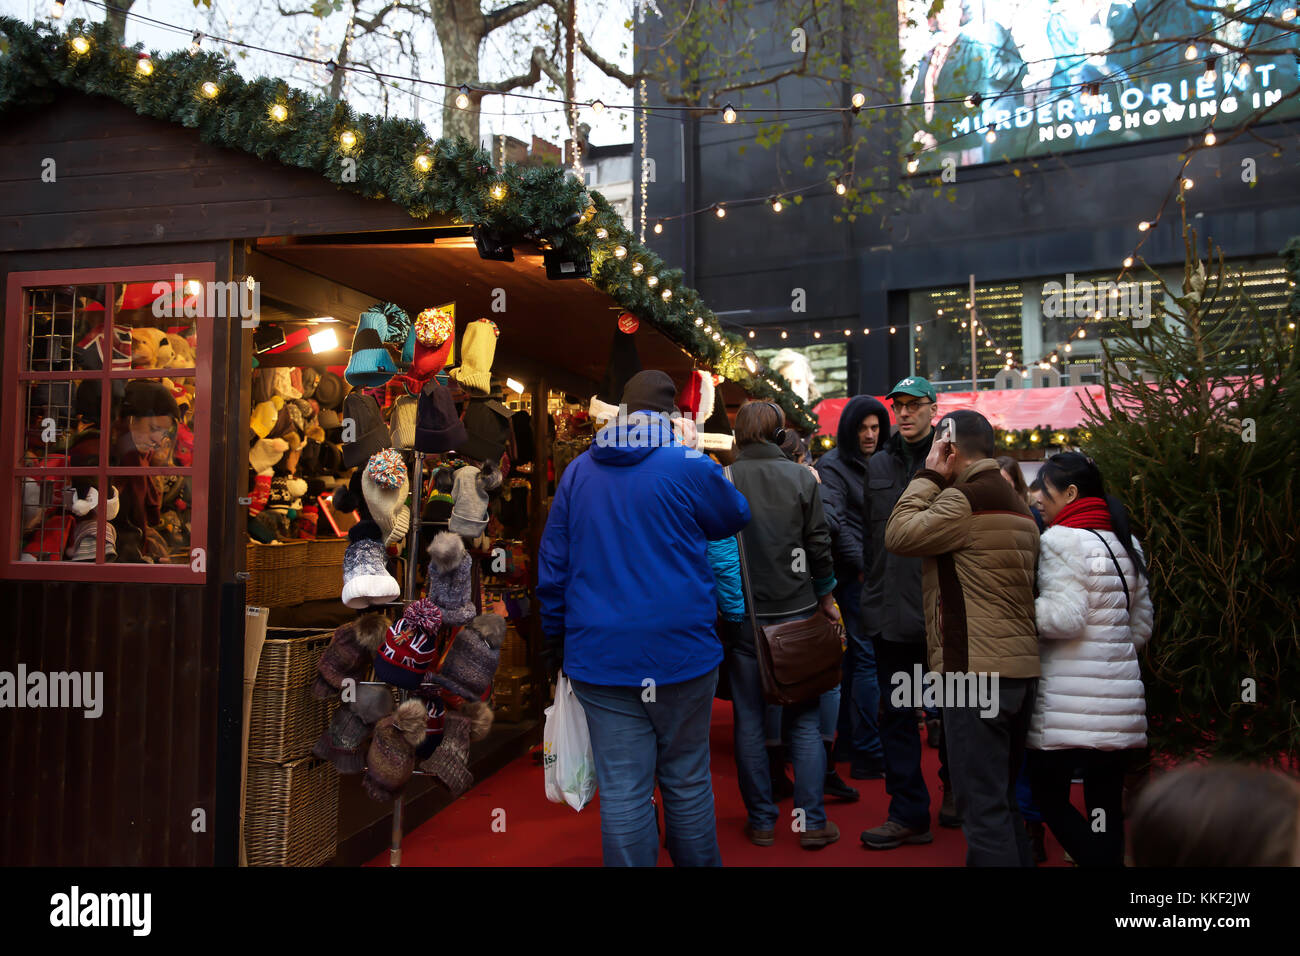 London, UK. 3rd Dec, 2017. People visit the Christmas Market in Leicester Square despite the dull and dismal weather Stock Photo